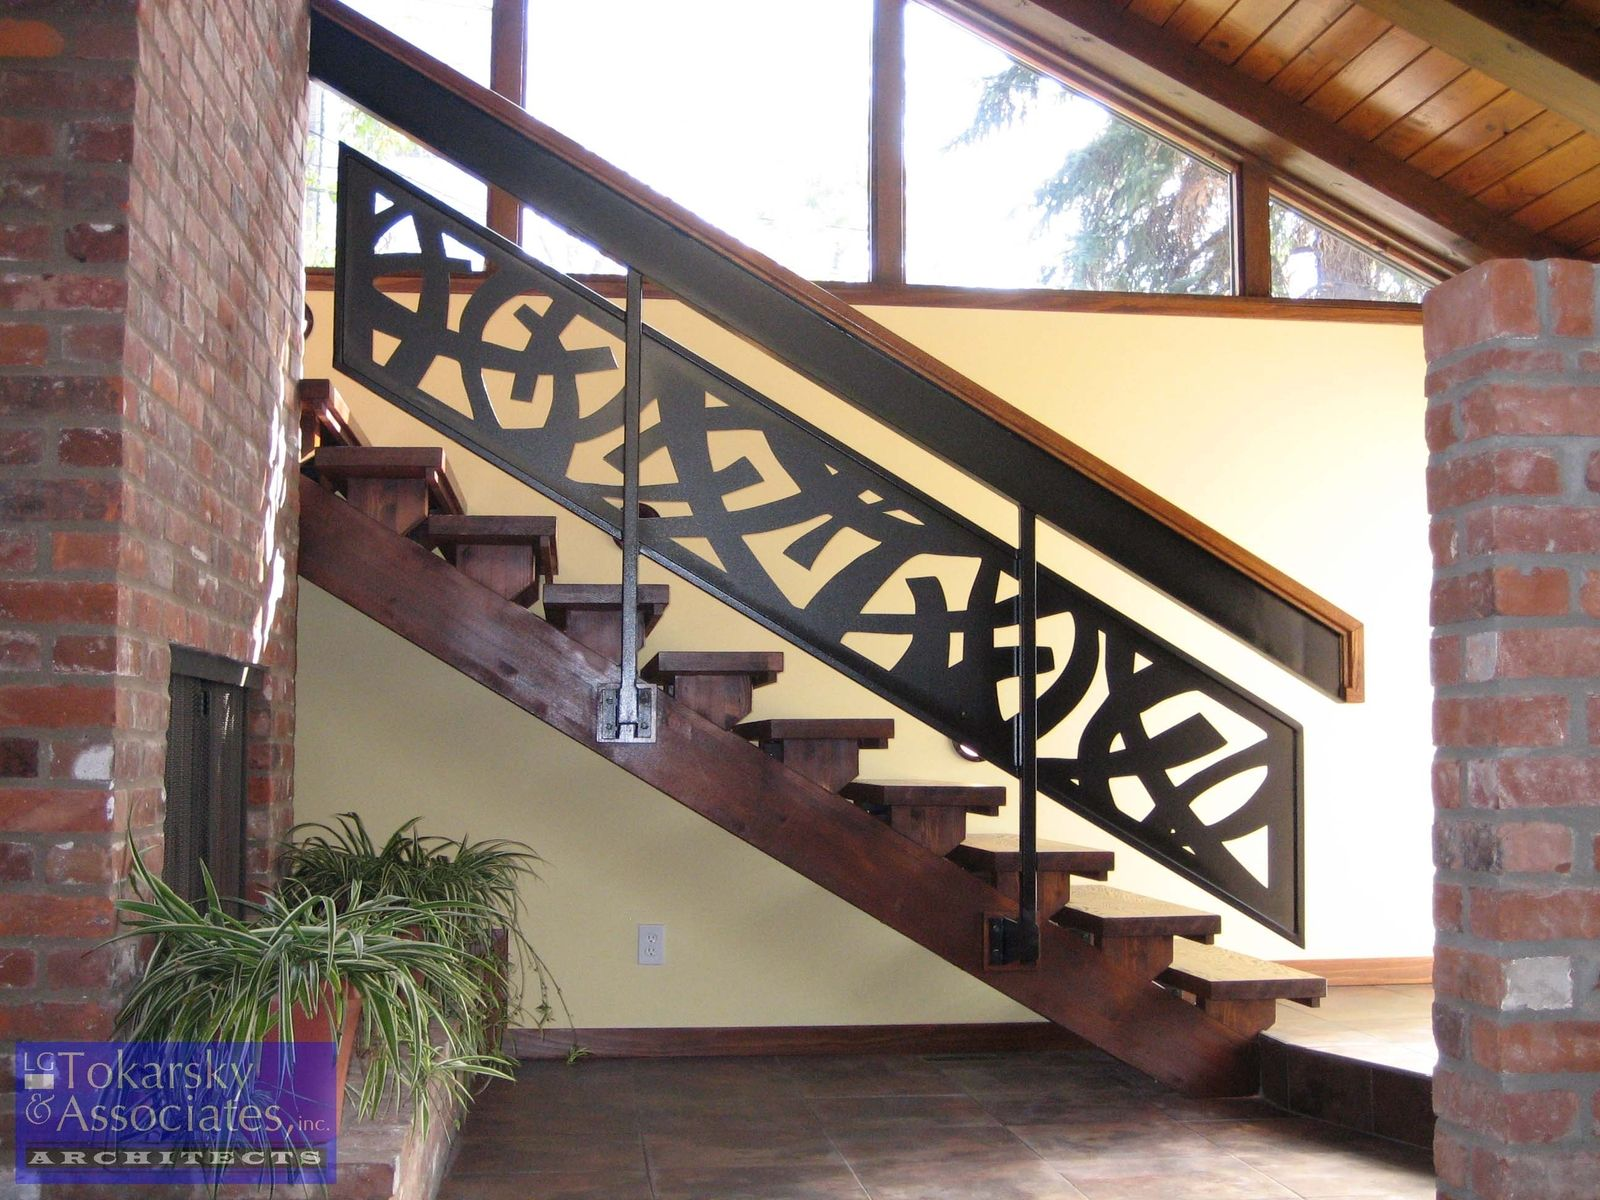 custom modern stainless steel cable railing open staircase designed fabricated and installed for a residential property in chicago